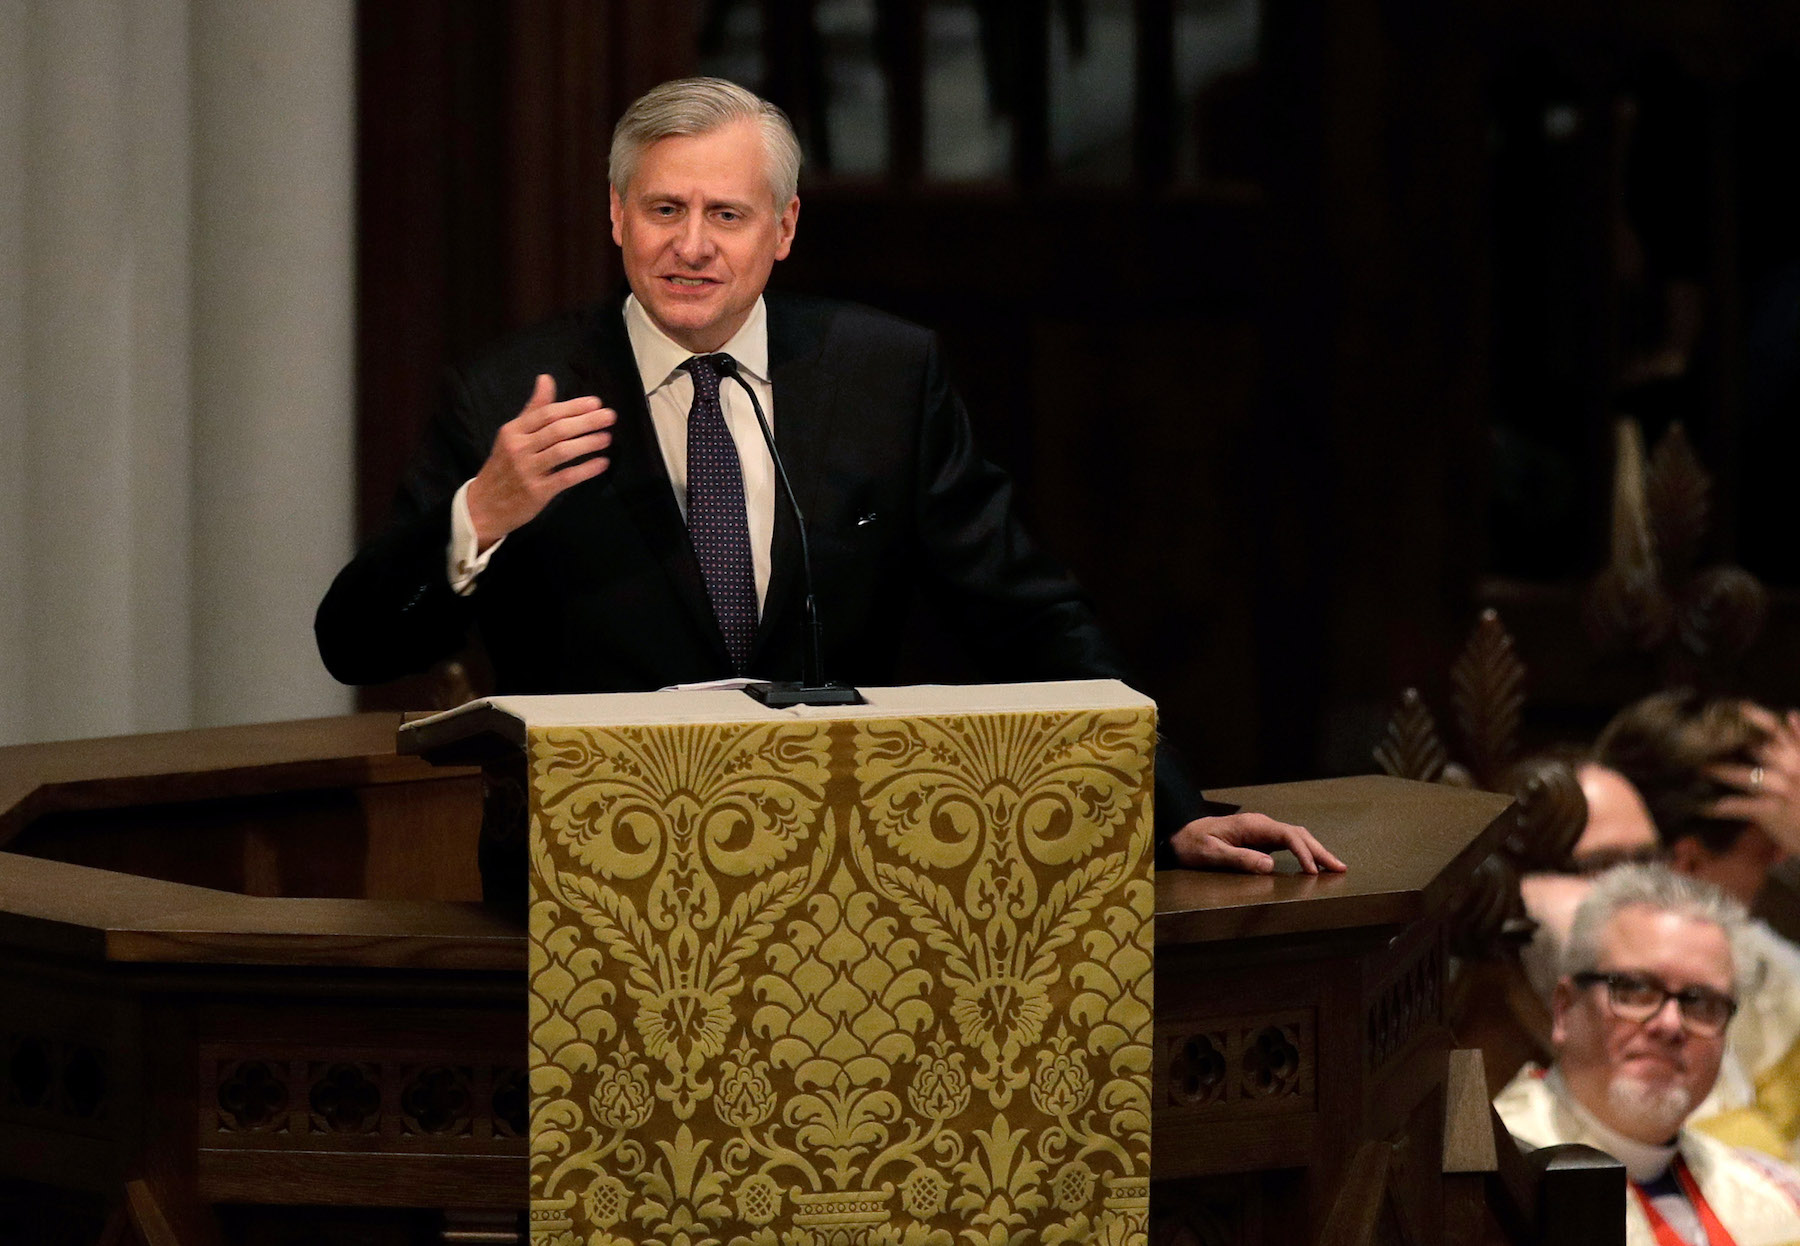 <div class='meta'><div class='origin-logo' data-origin='none'></div><span class='caption-text' data-credit='David J. Phillip-Pool/Getty Images'>Jon Meacham speaks during a funeral service for former first lady Barbara Bush at St. Martin's Episcopal Church, April 21, 2018 in Houston, Texas.</span></div>